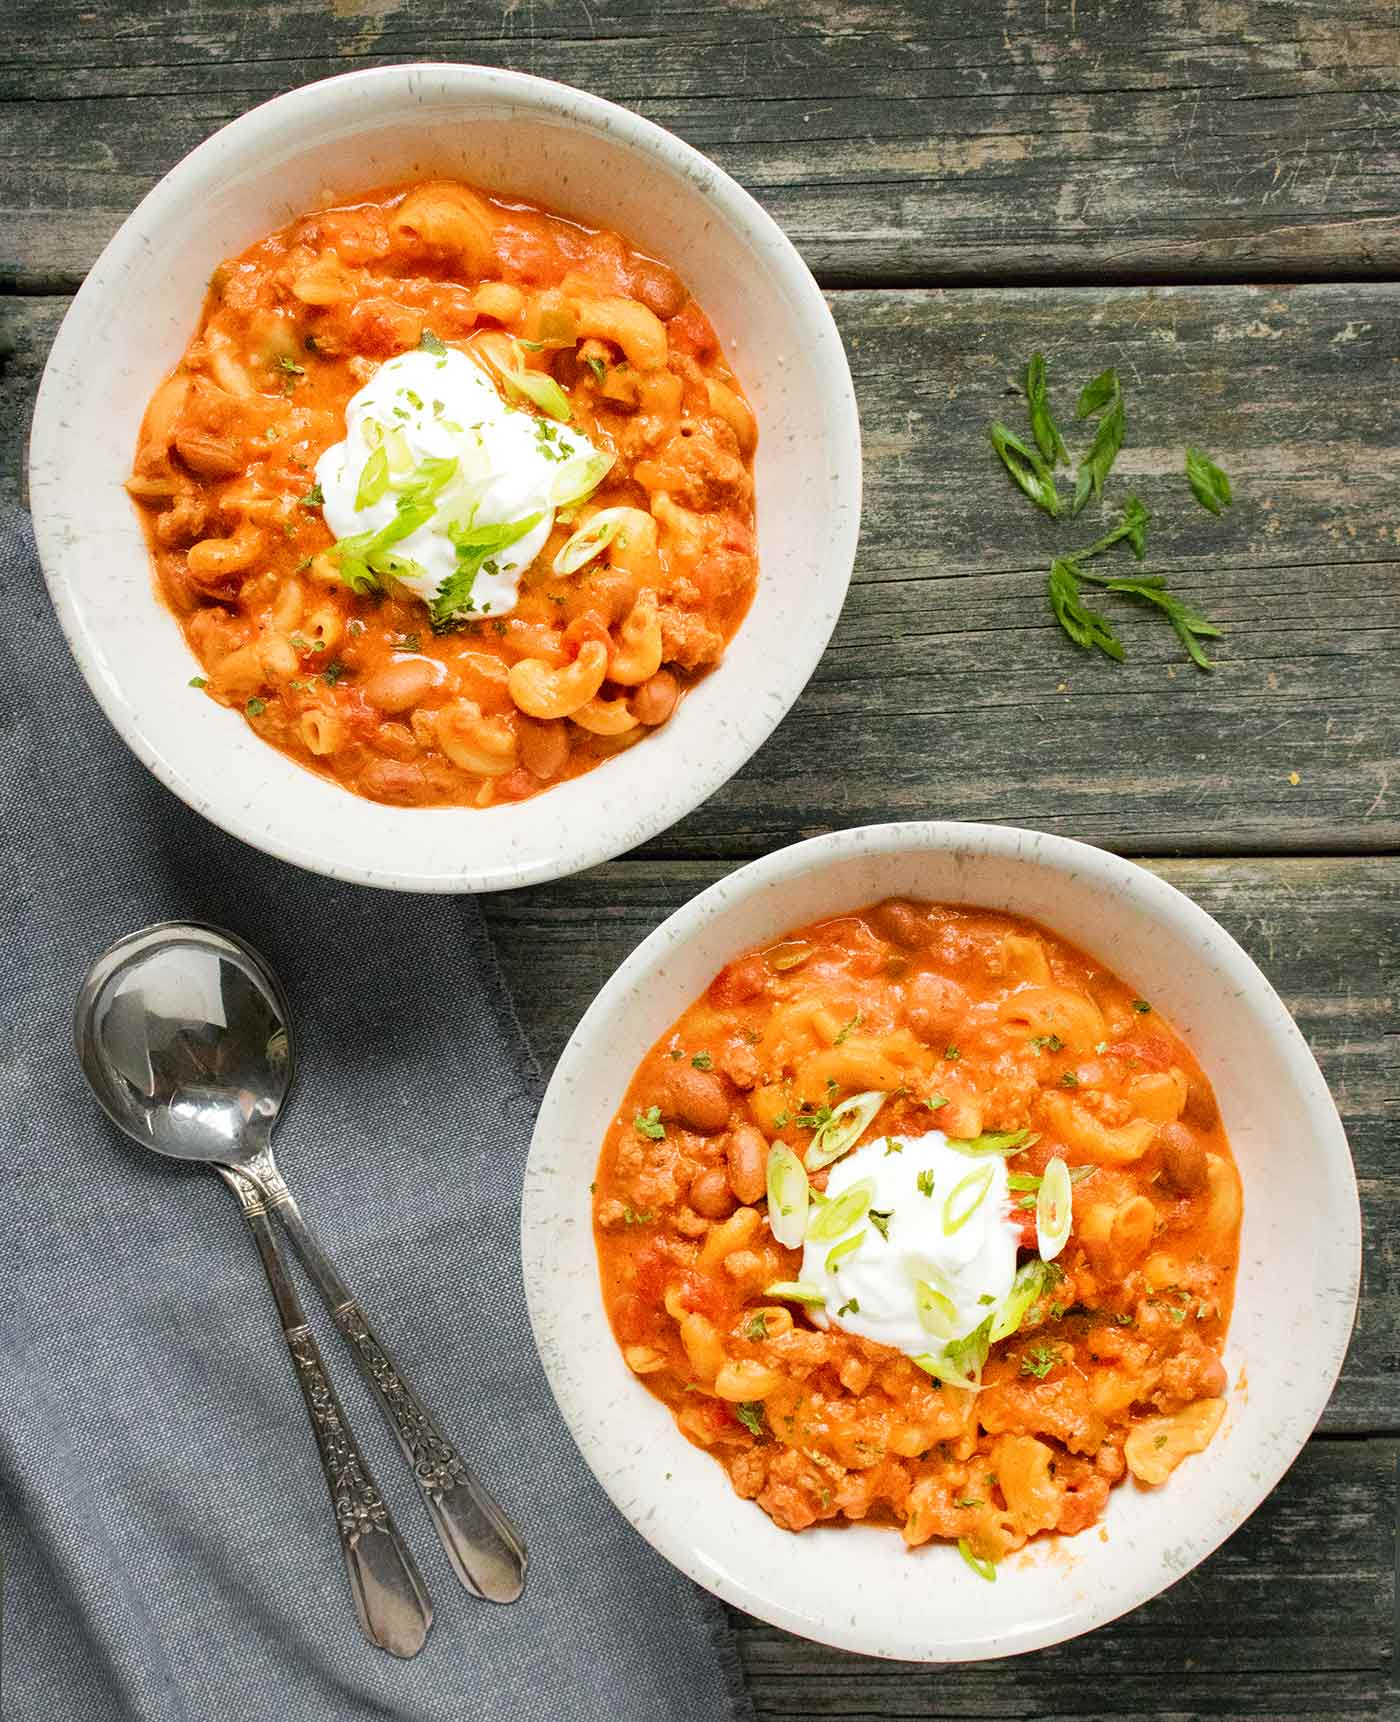 Two bowls of Instant Pot Chili Mac with Turkey, topped with sour cream and green onions